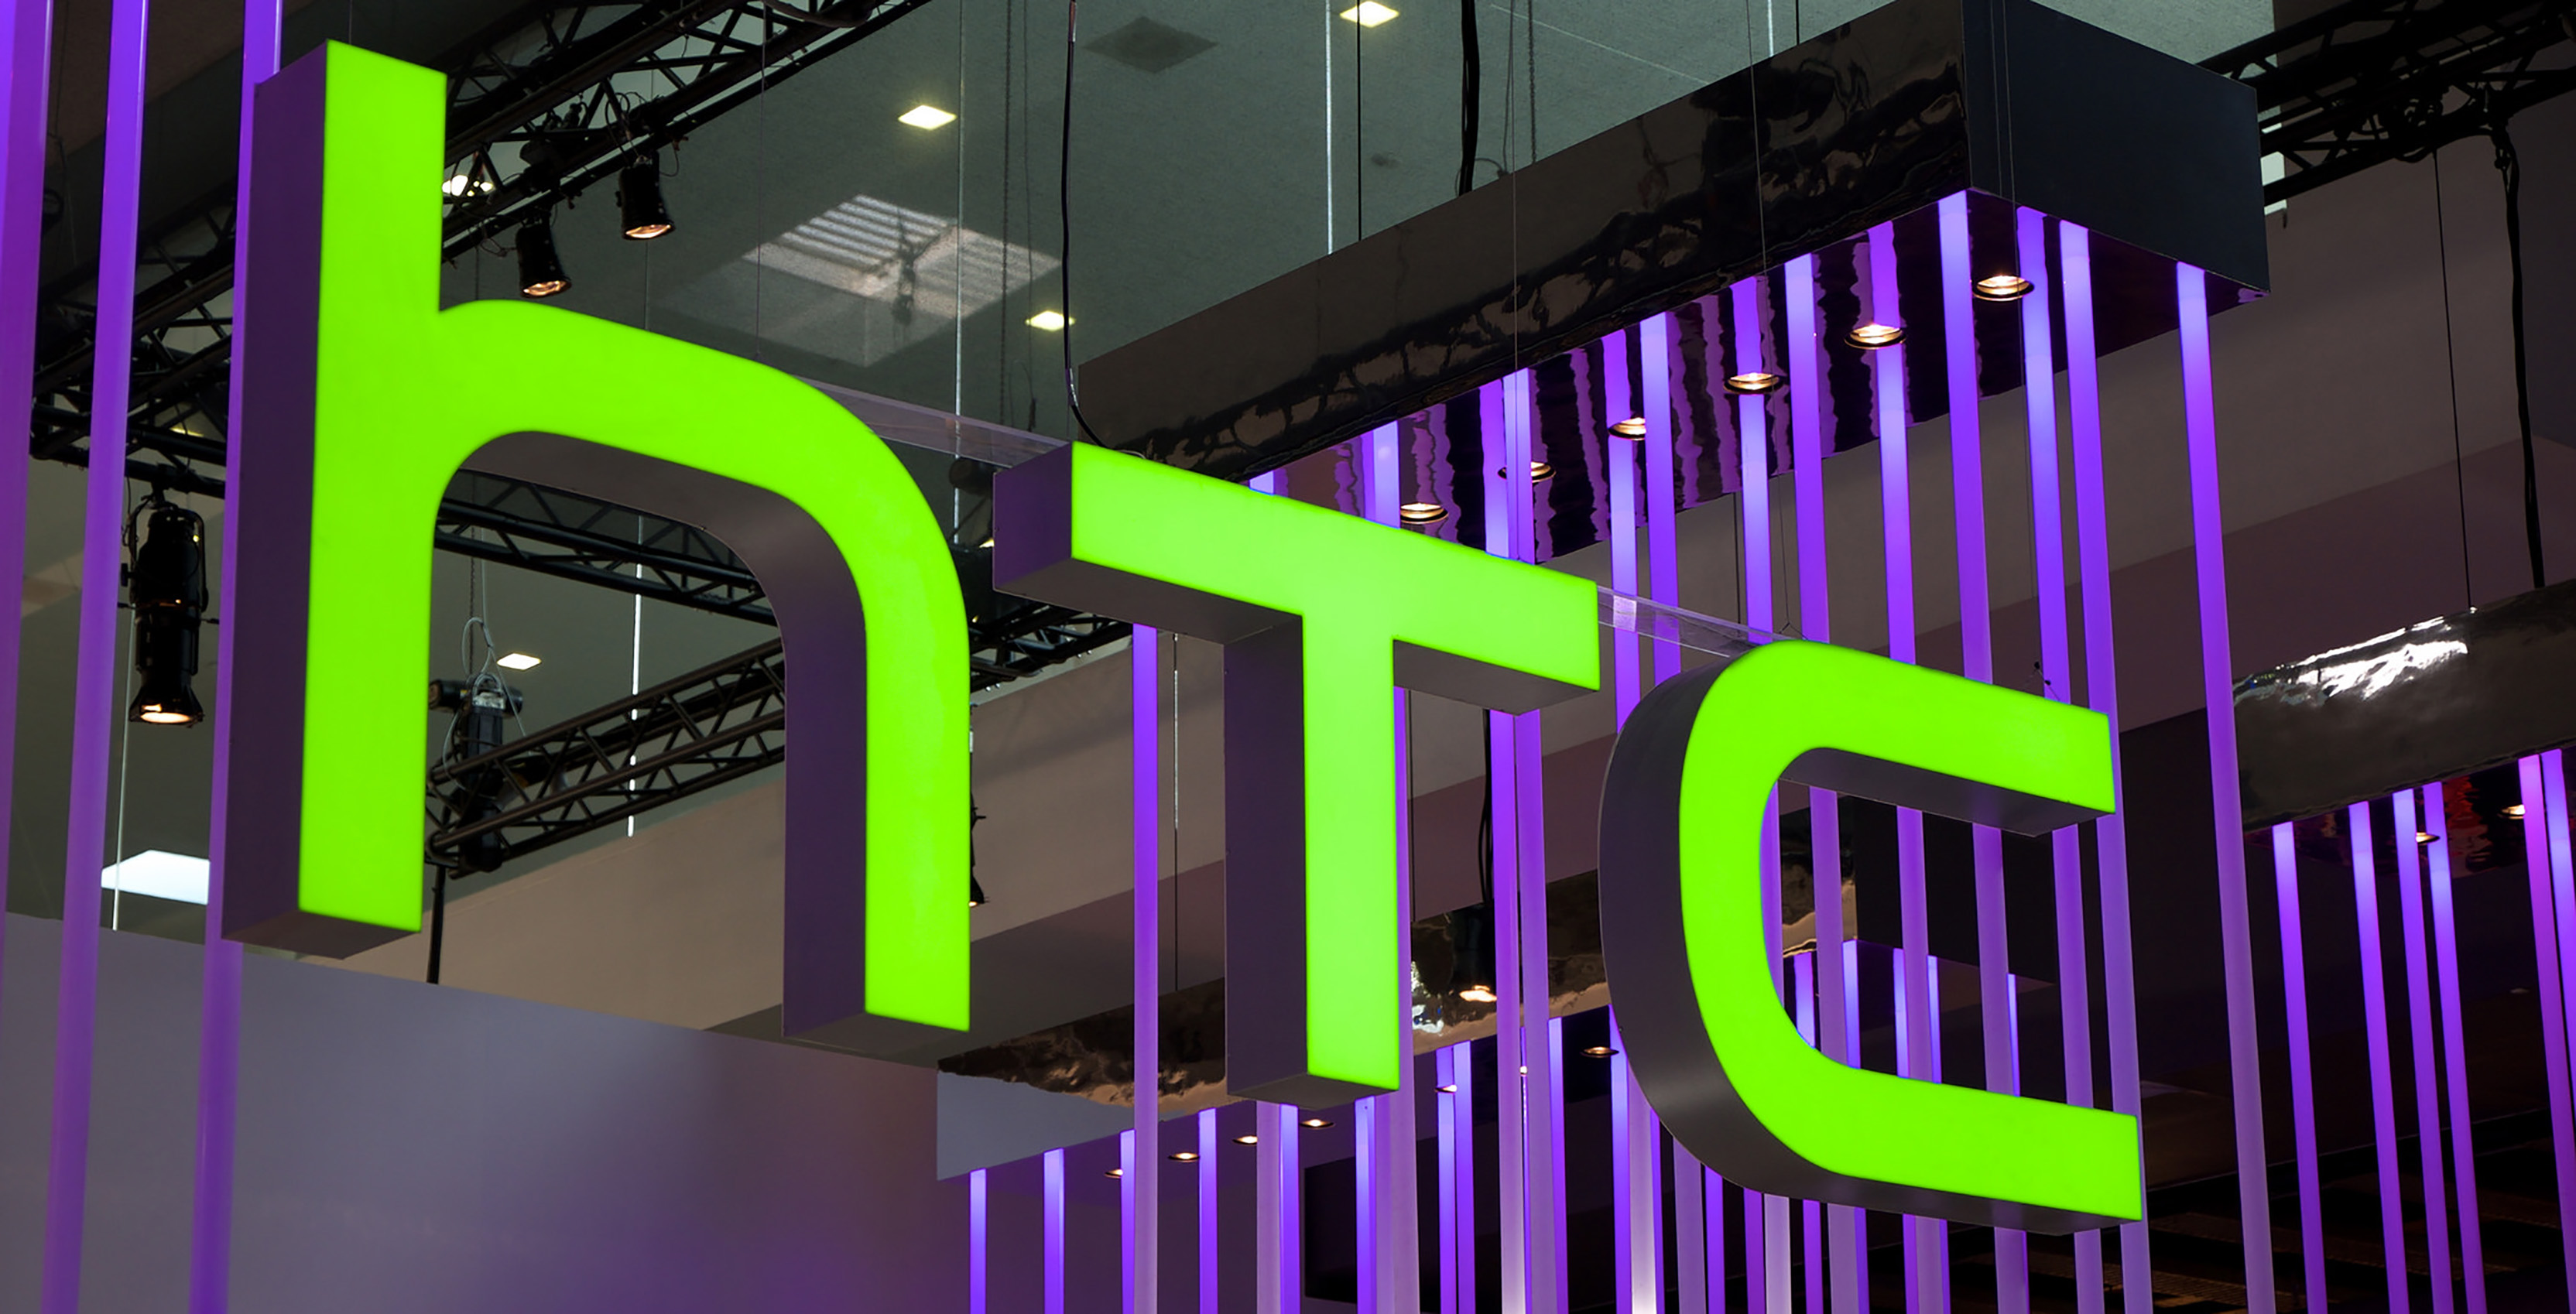 HTC planning sale of company or VR business